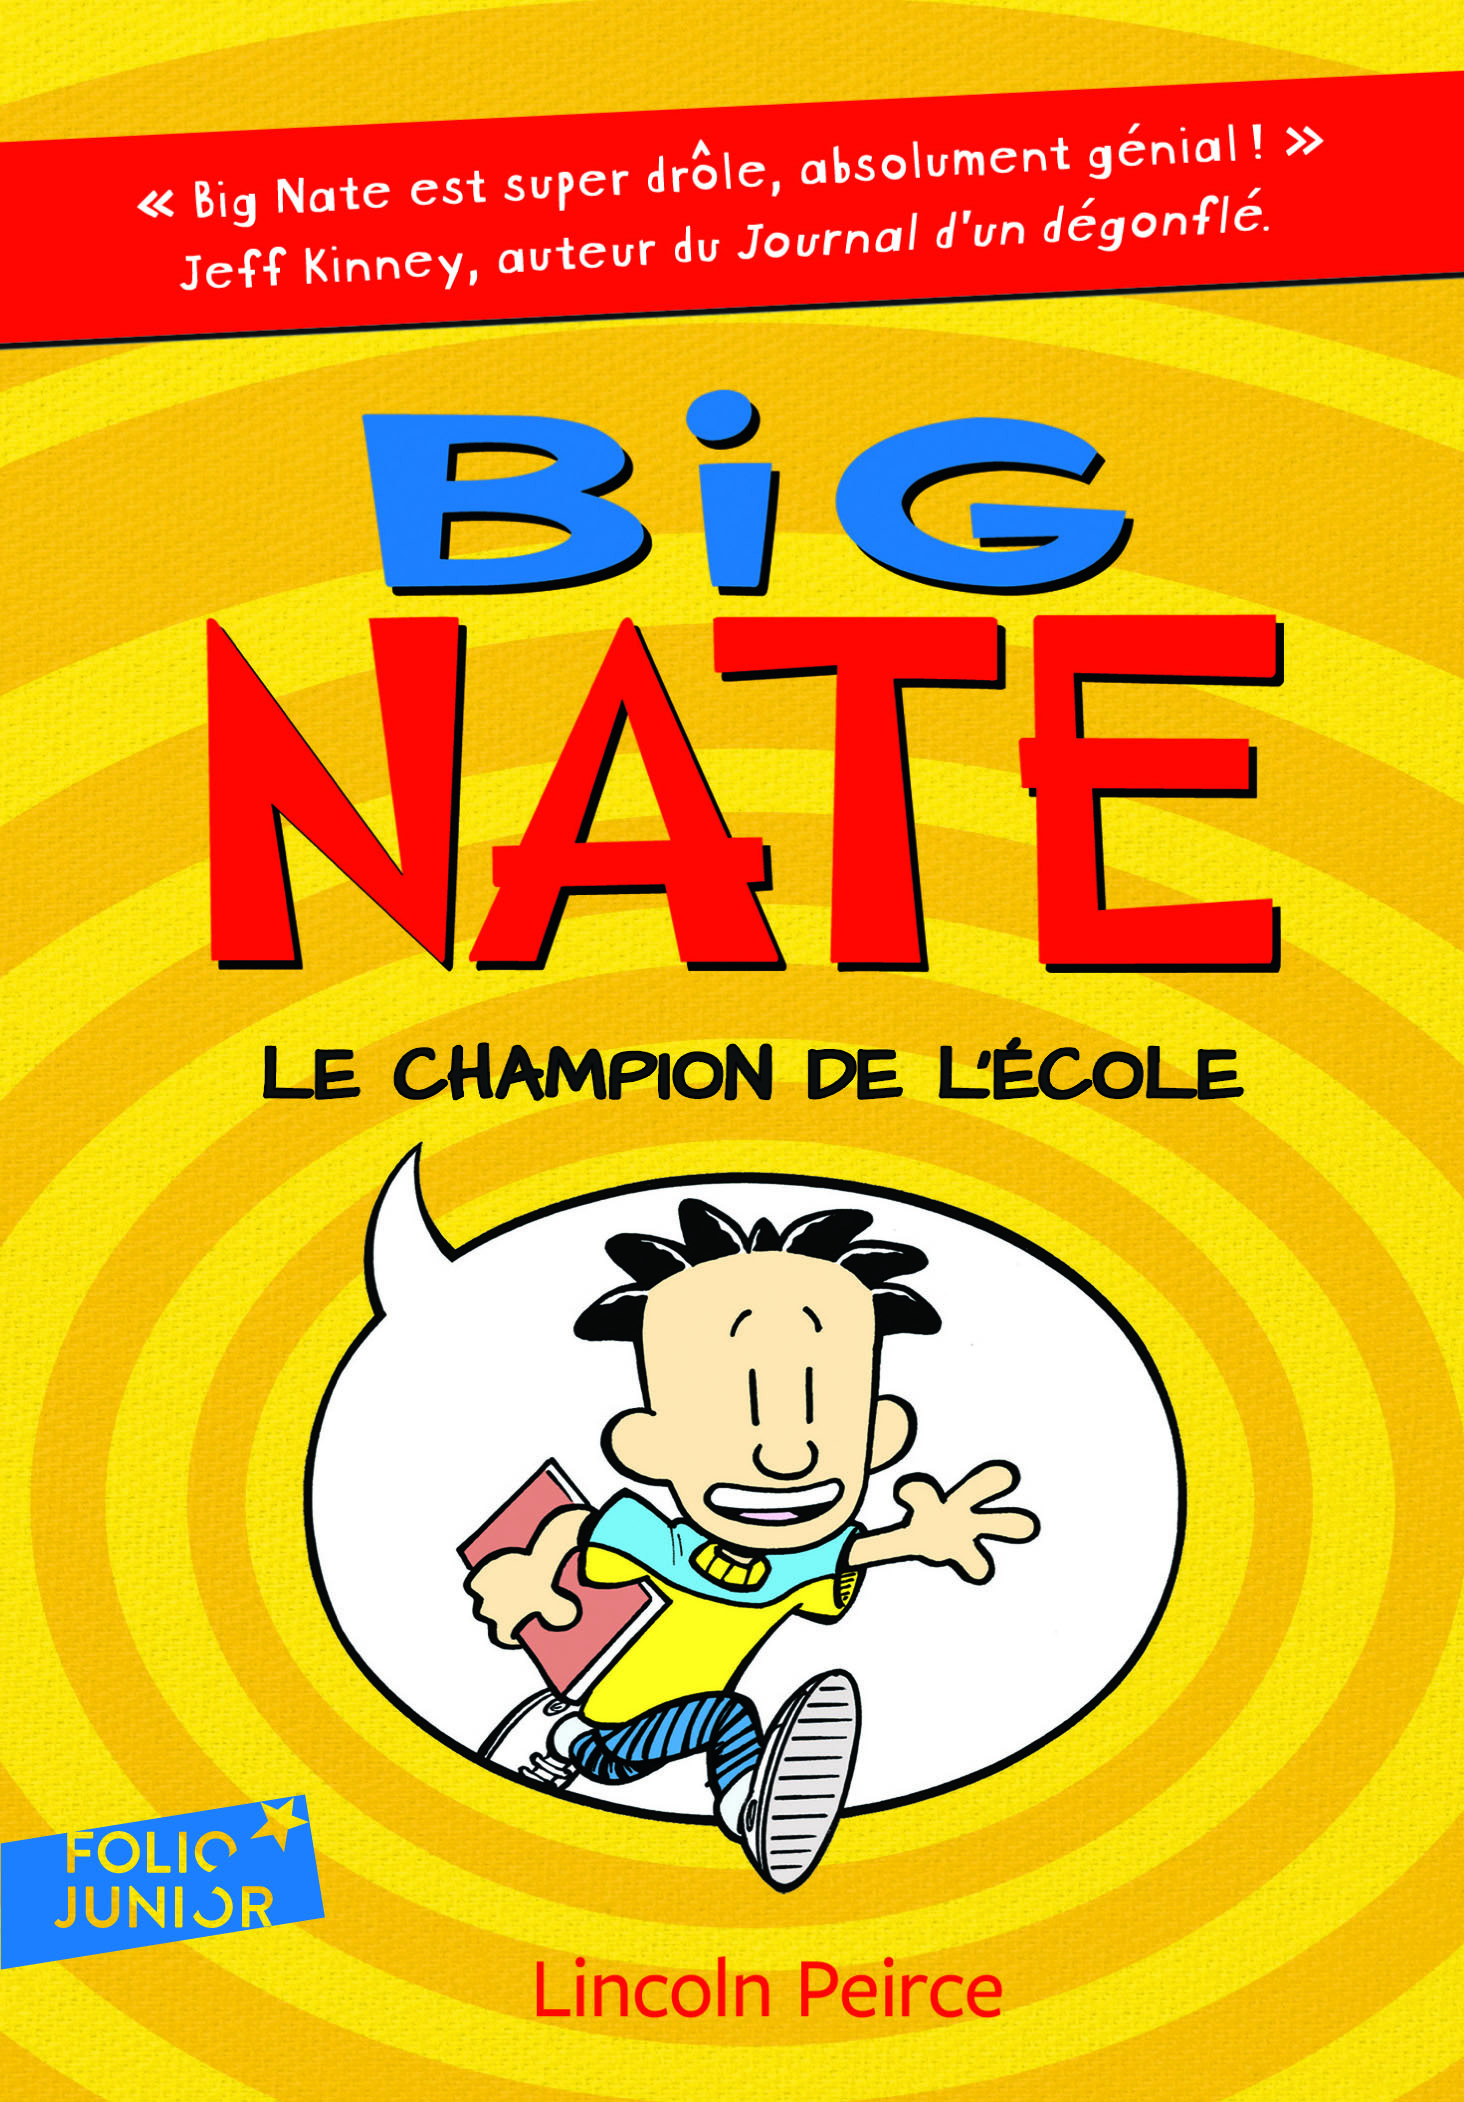 BIG NATE 1 - LE CHAMPION DE L'ECOLE